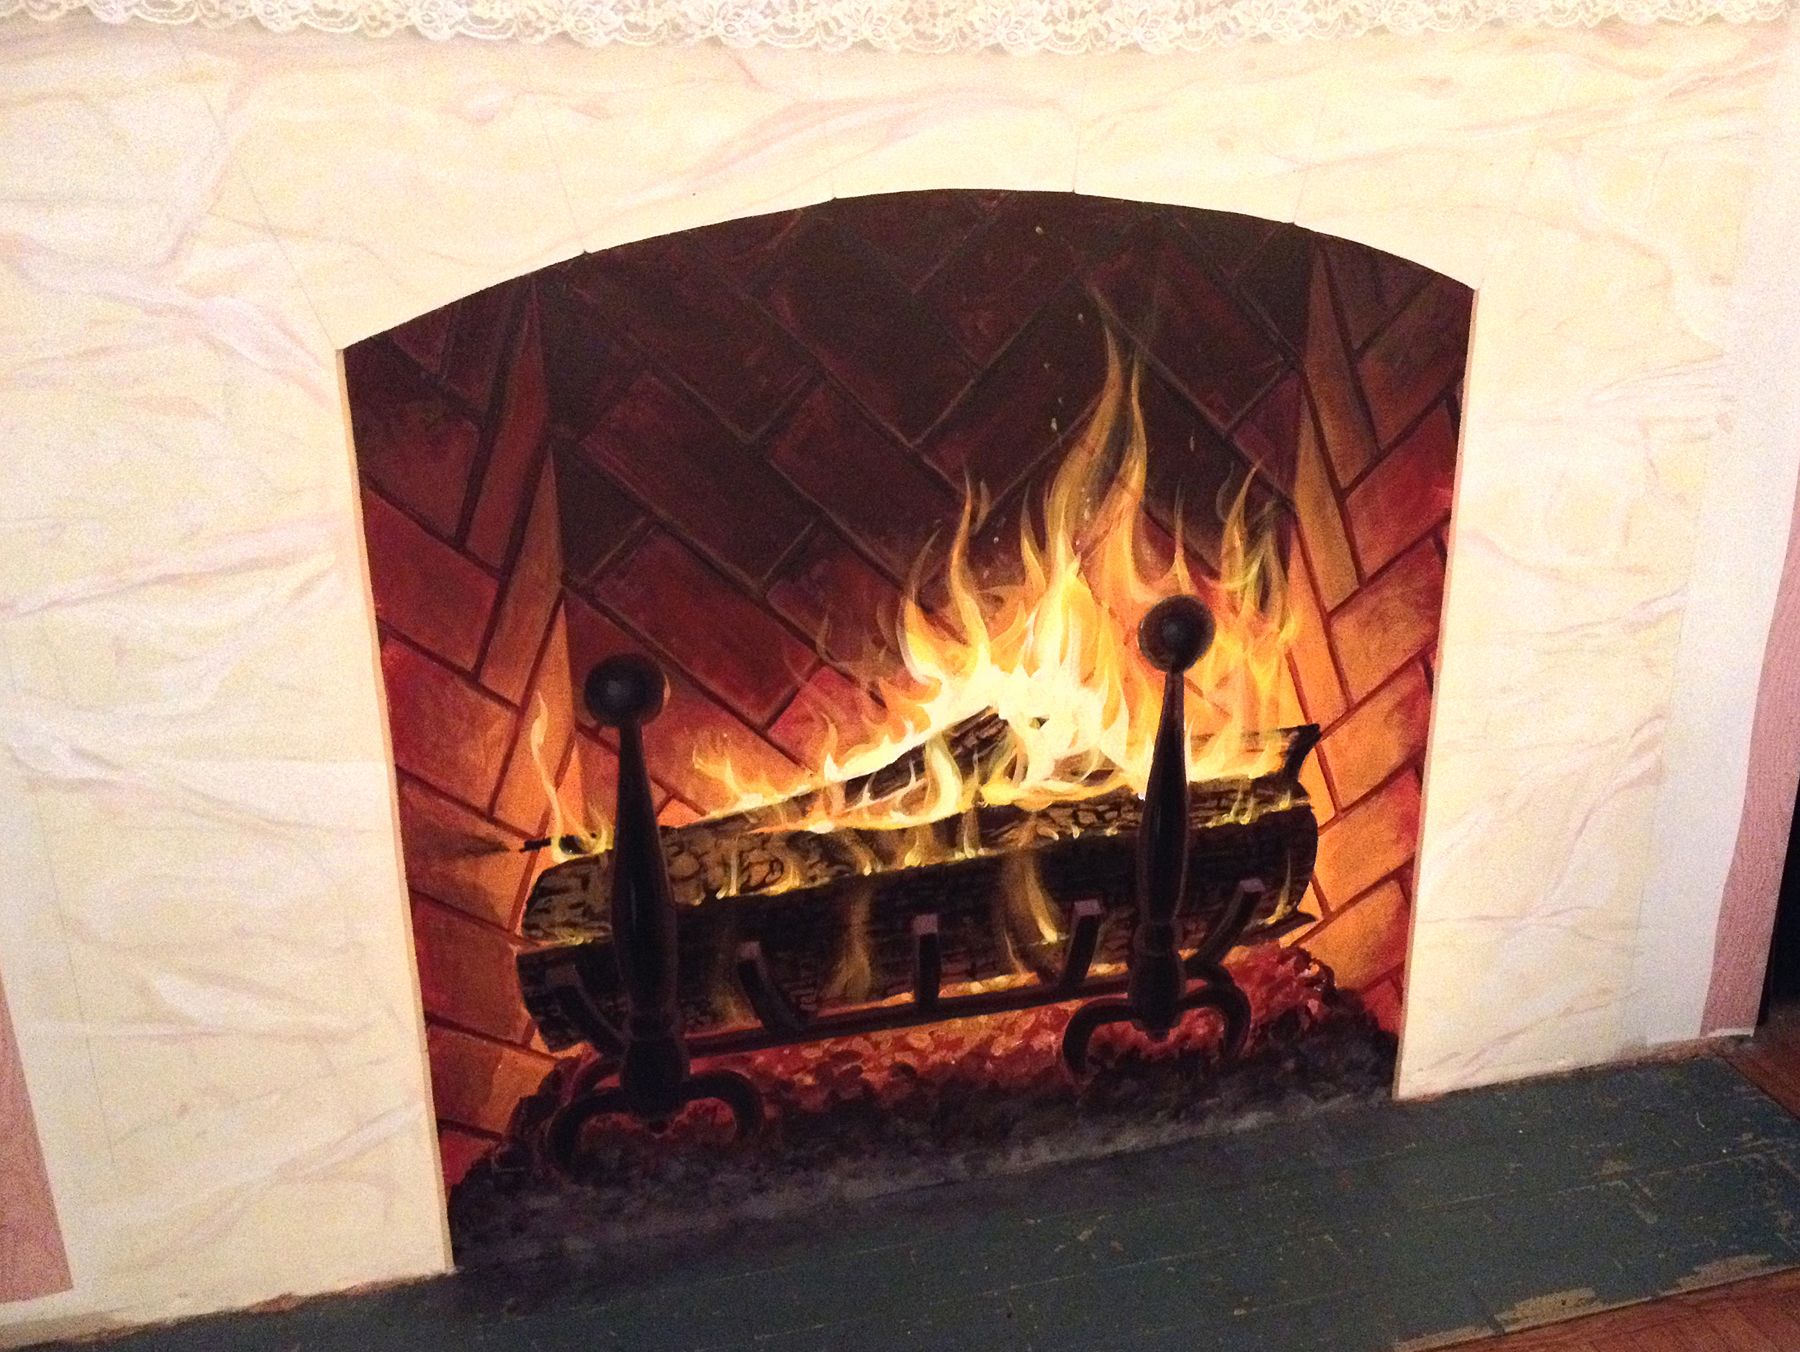 Trompe l\'oeil) Fireplace and mantle stone - Acrylic | my own random ...